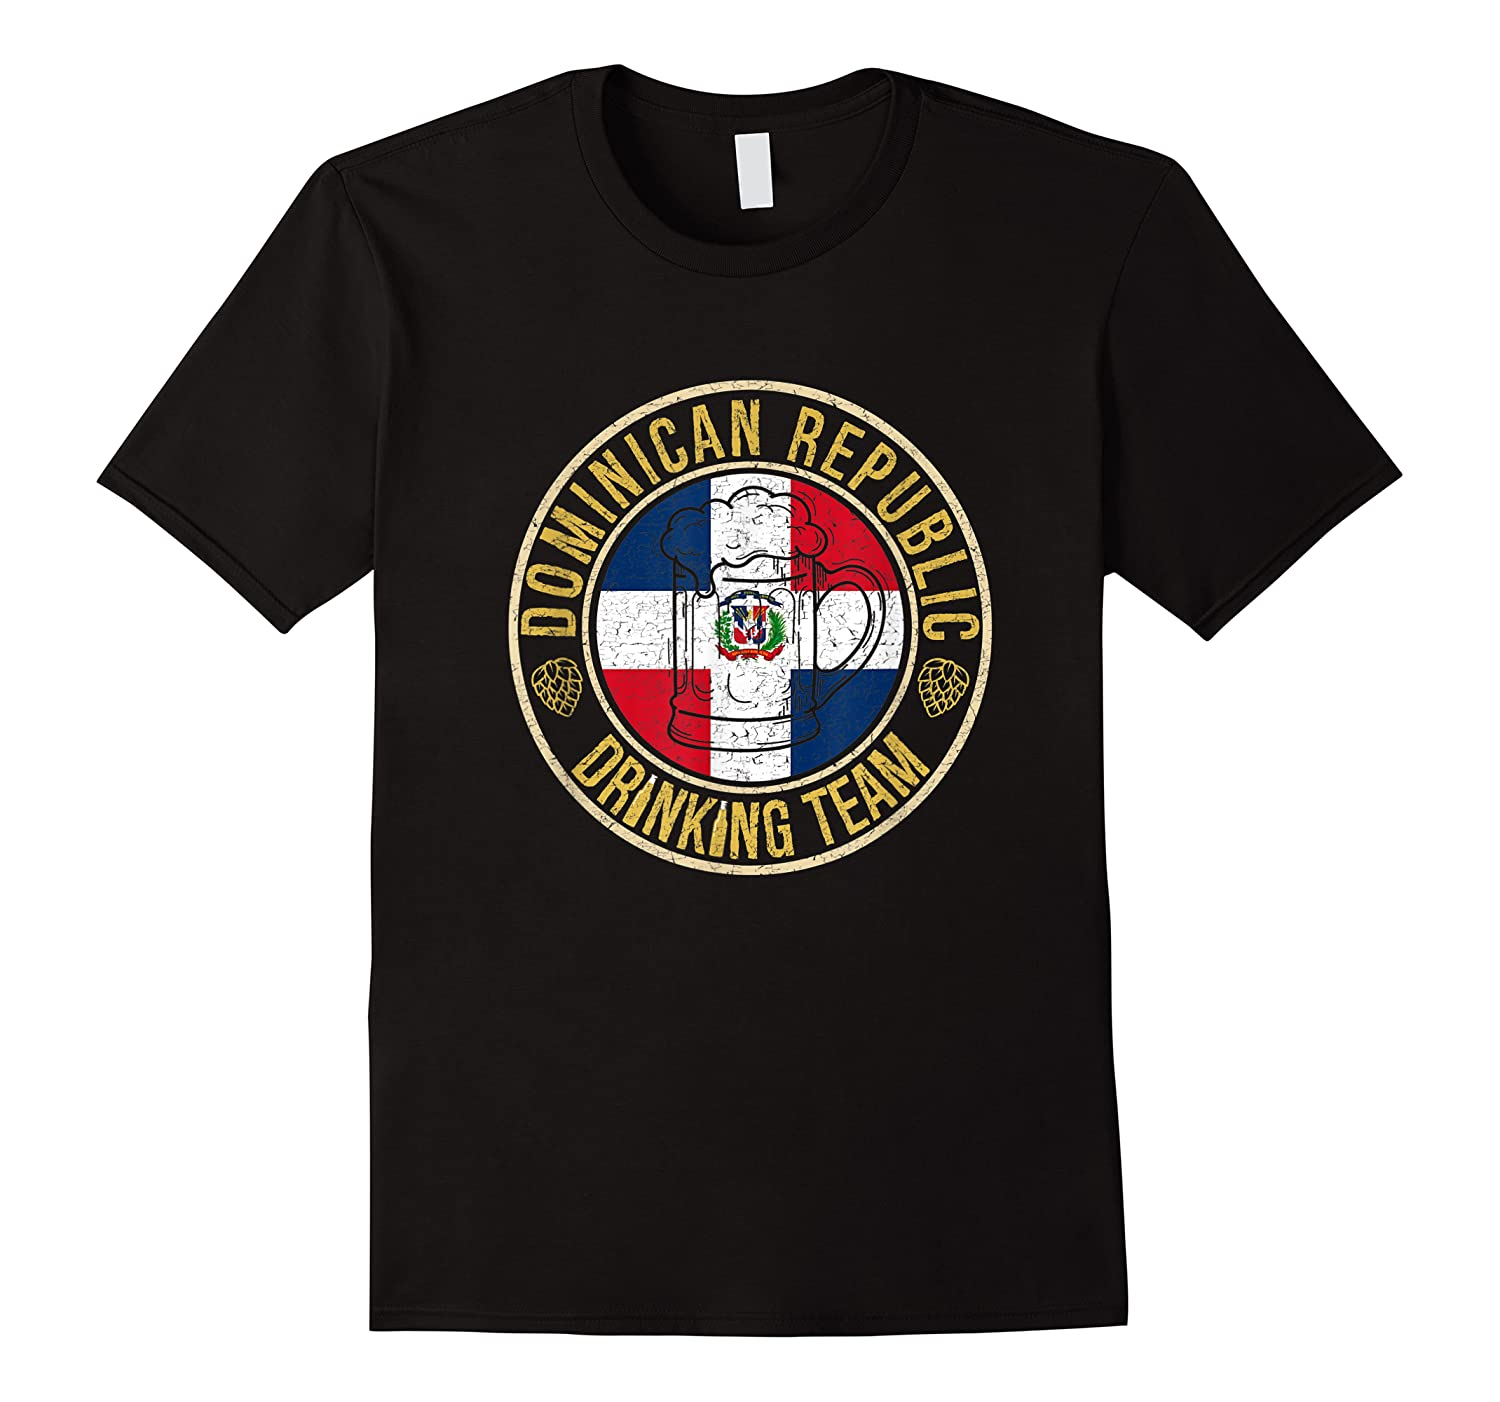 Funny Beer Dominican Republic Drinking Team Casual T-shirt